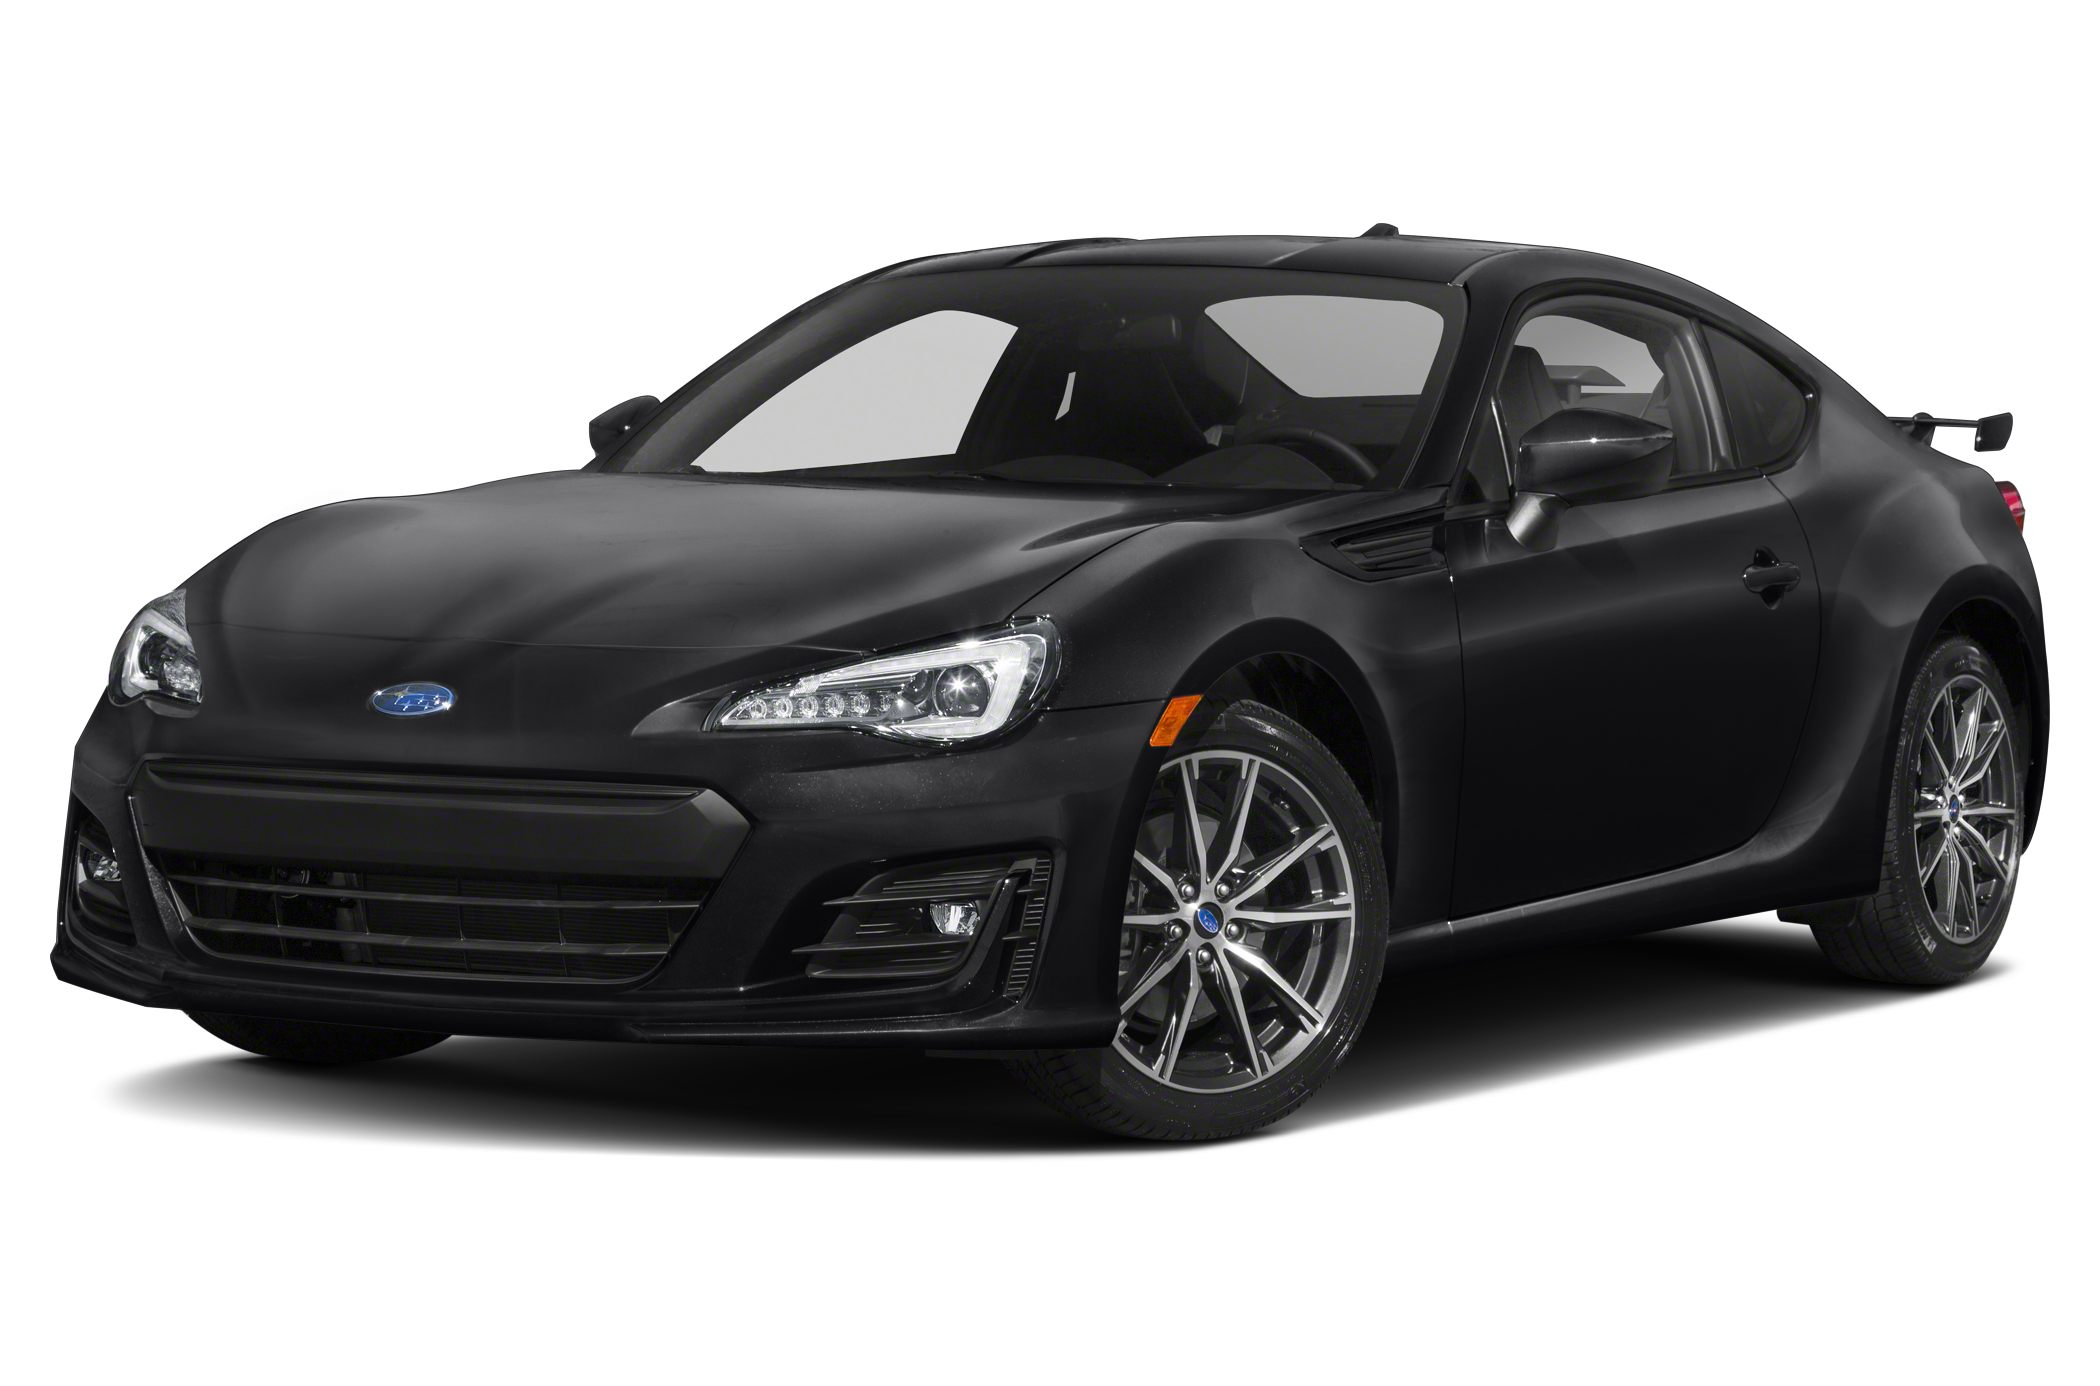 2016 Subaru Hyper Blue Brz And Sti on new fiat 124 spider convertible